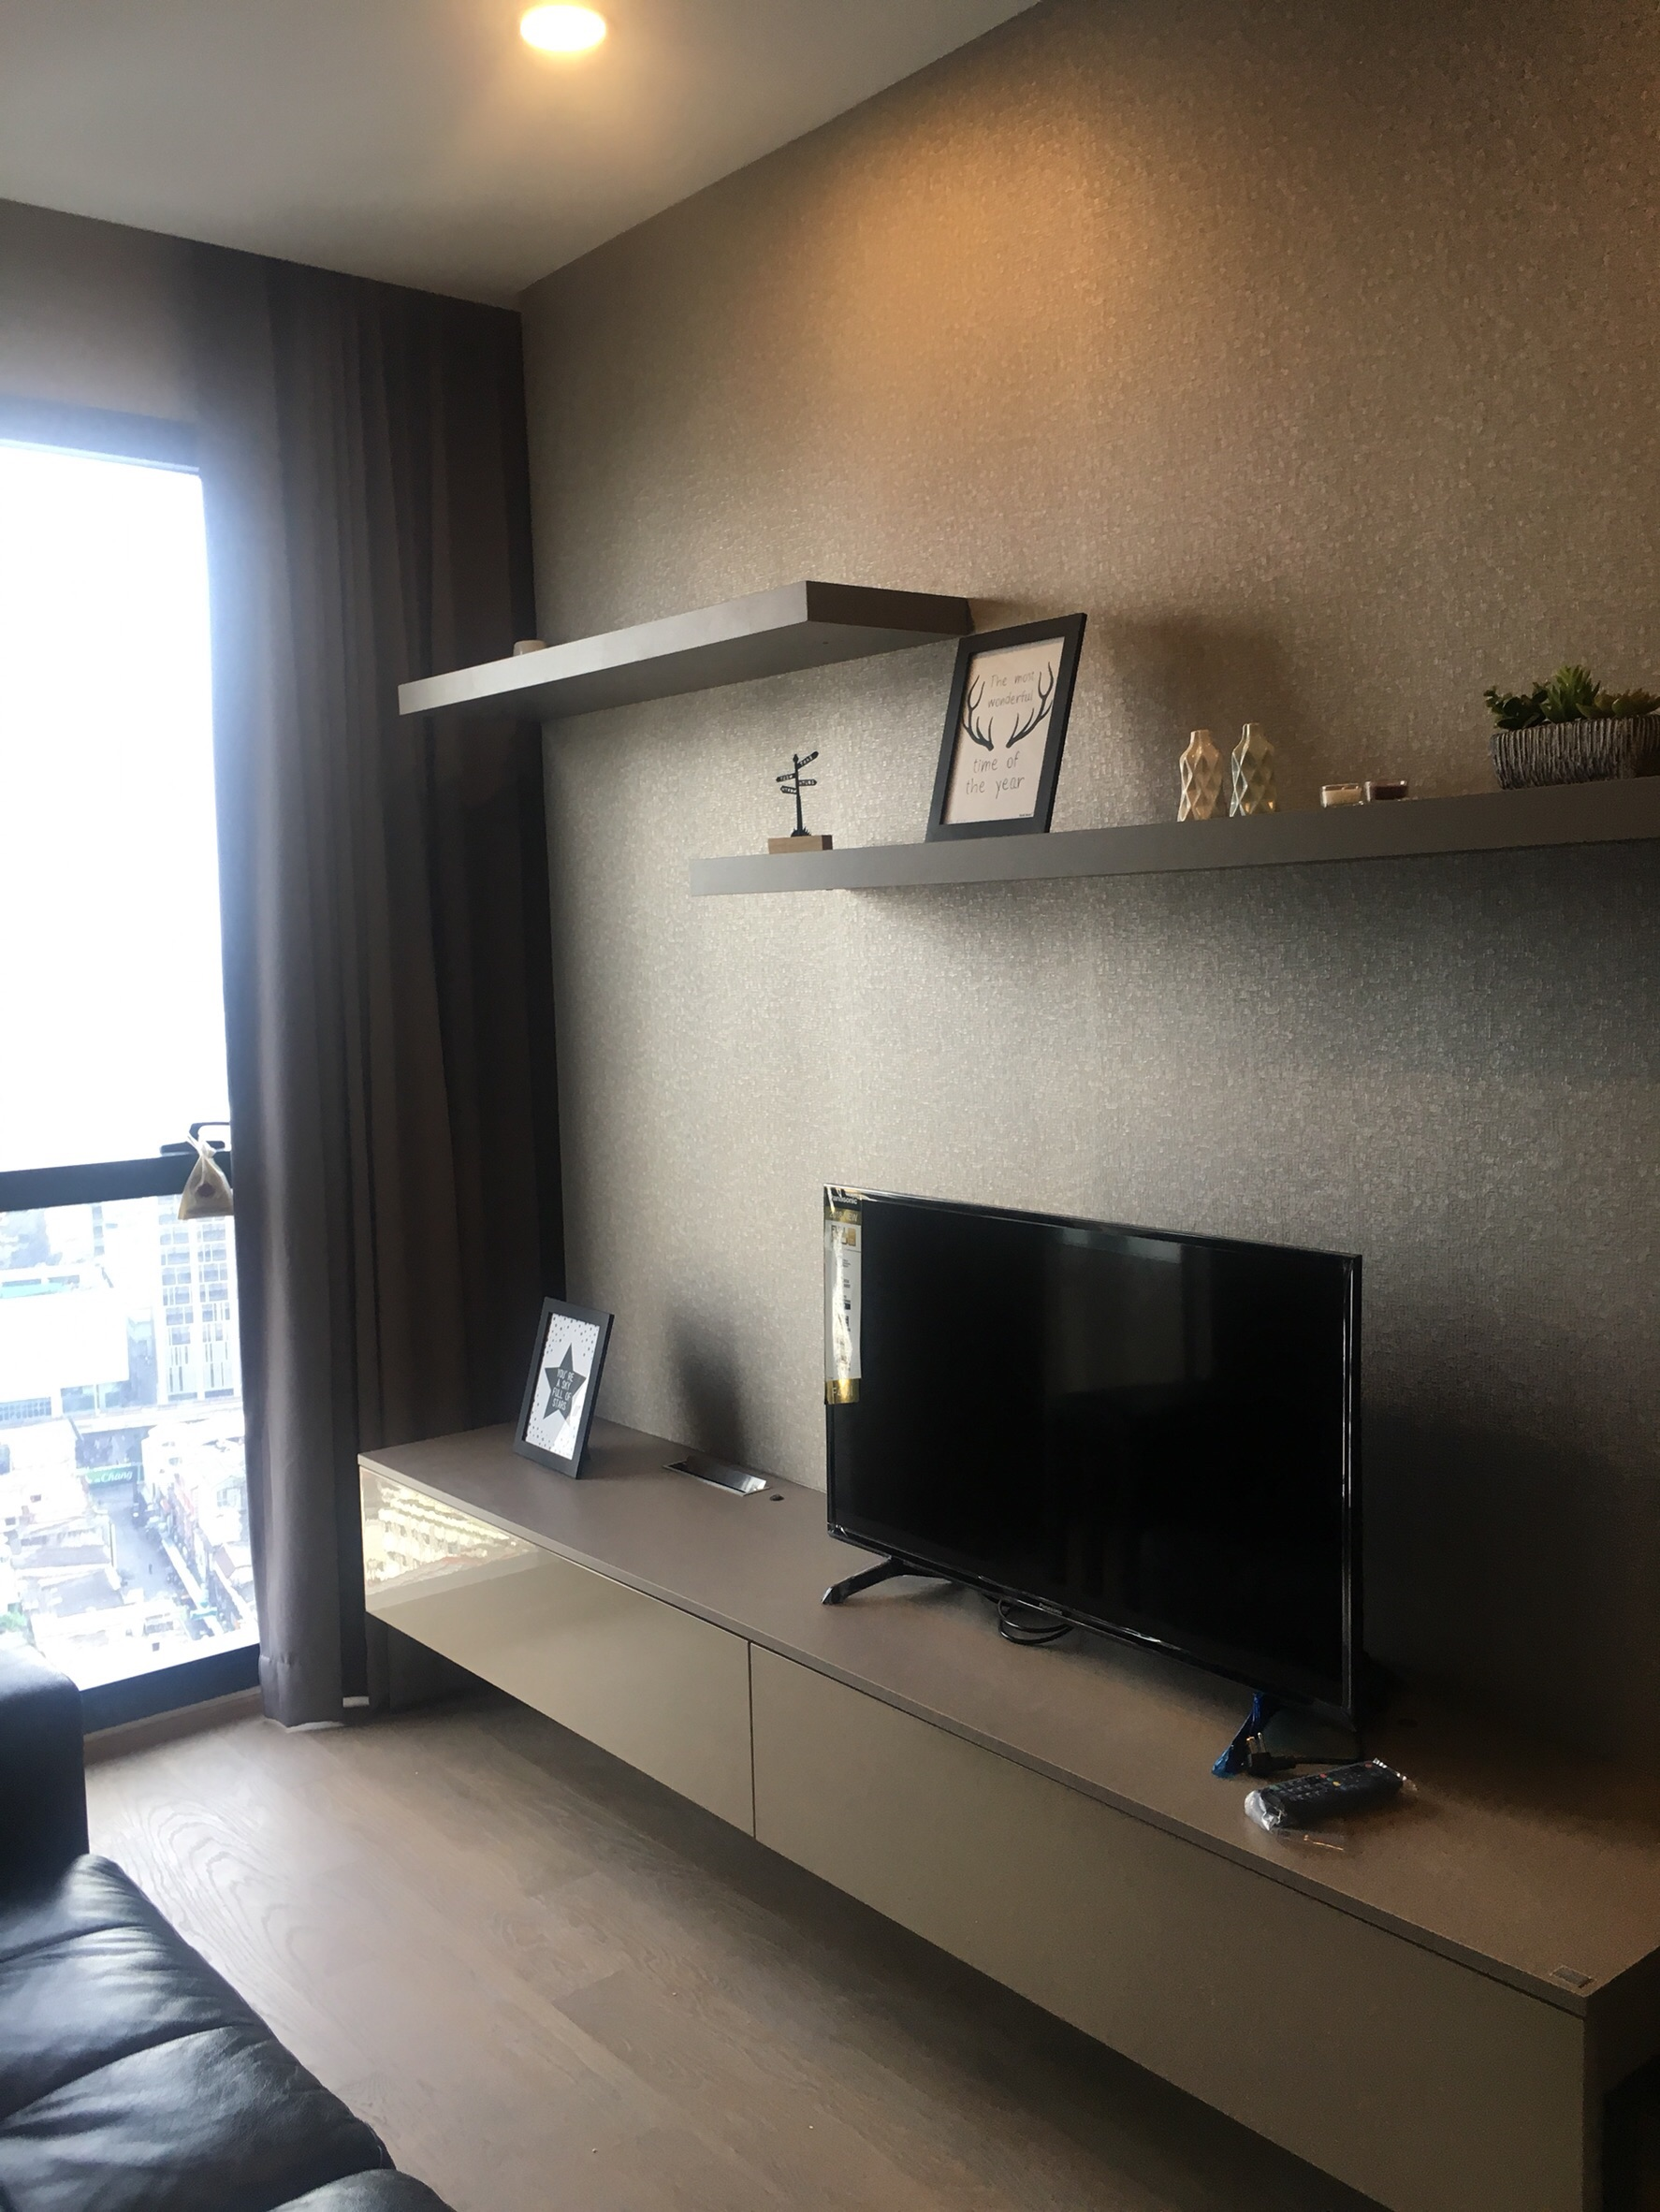 For SaleCondoSiam Paragon ,Chulalongkorn,Samyan : Sell ​​Ashton Chula Silom 1BR Condo, 29th Floor, Beautiful View, next to the mrt. Samyan BTS station, Sala Daeng, opposite Chulalongkorn University. Luxurious room, fully furnished, ready to call. 063-826-5942